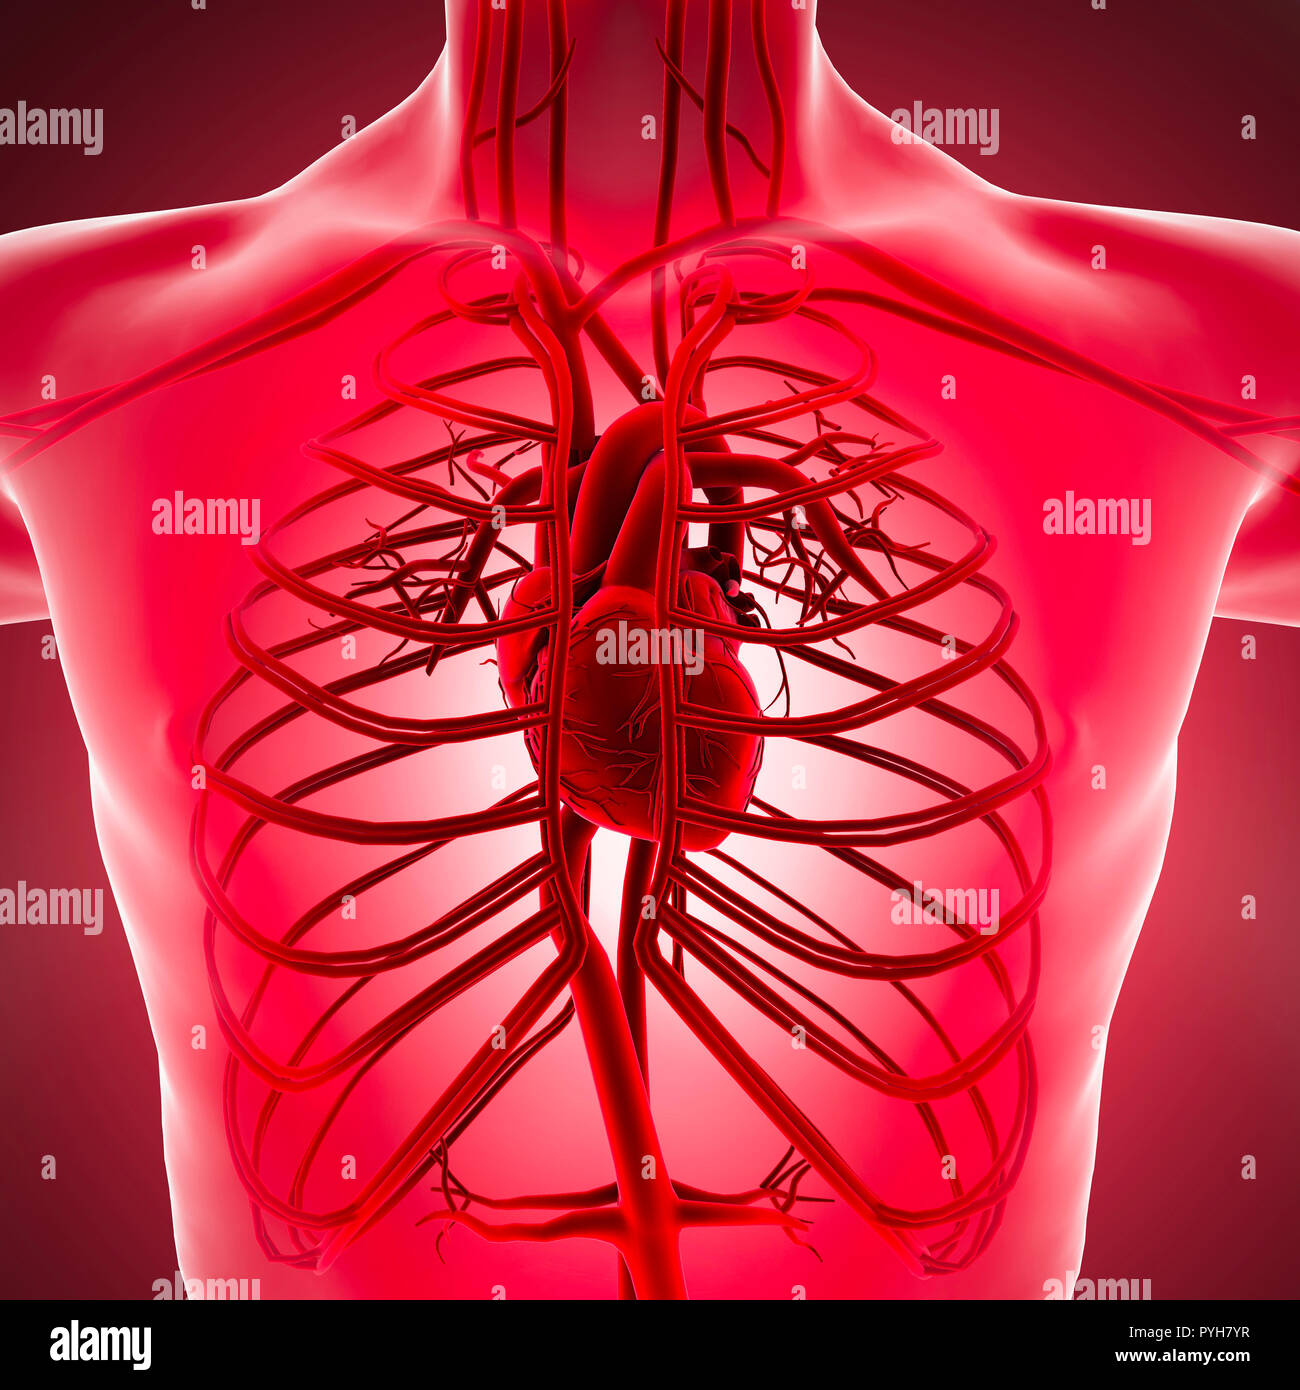 Human Body X-ray View Of The Circulatory System With Heart